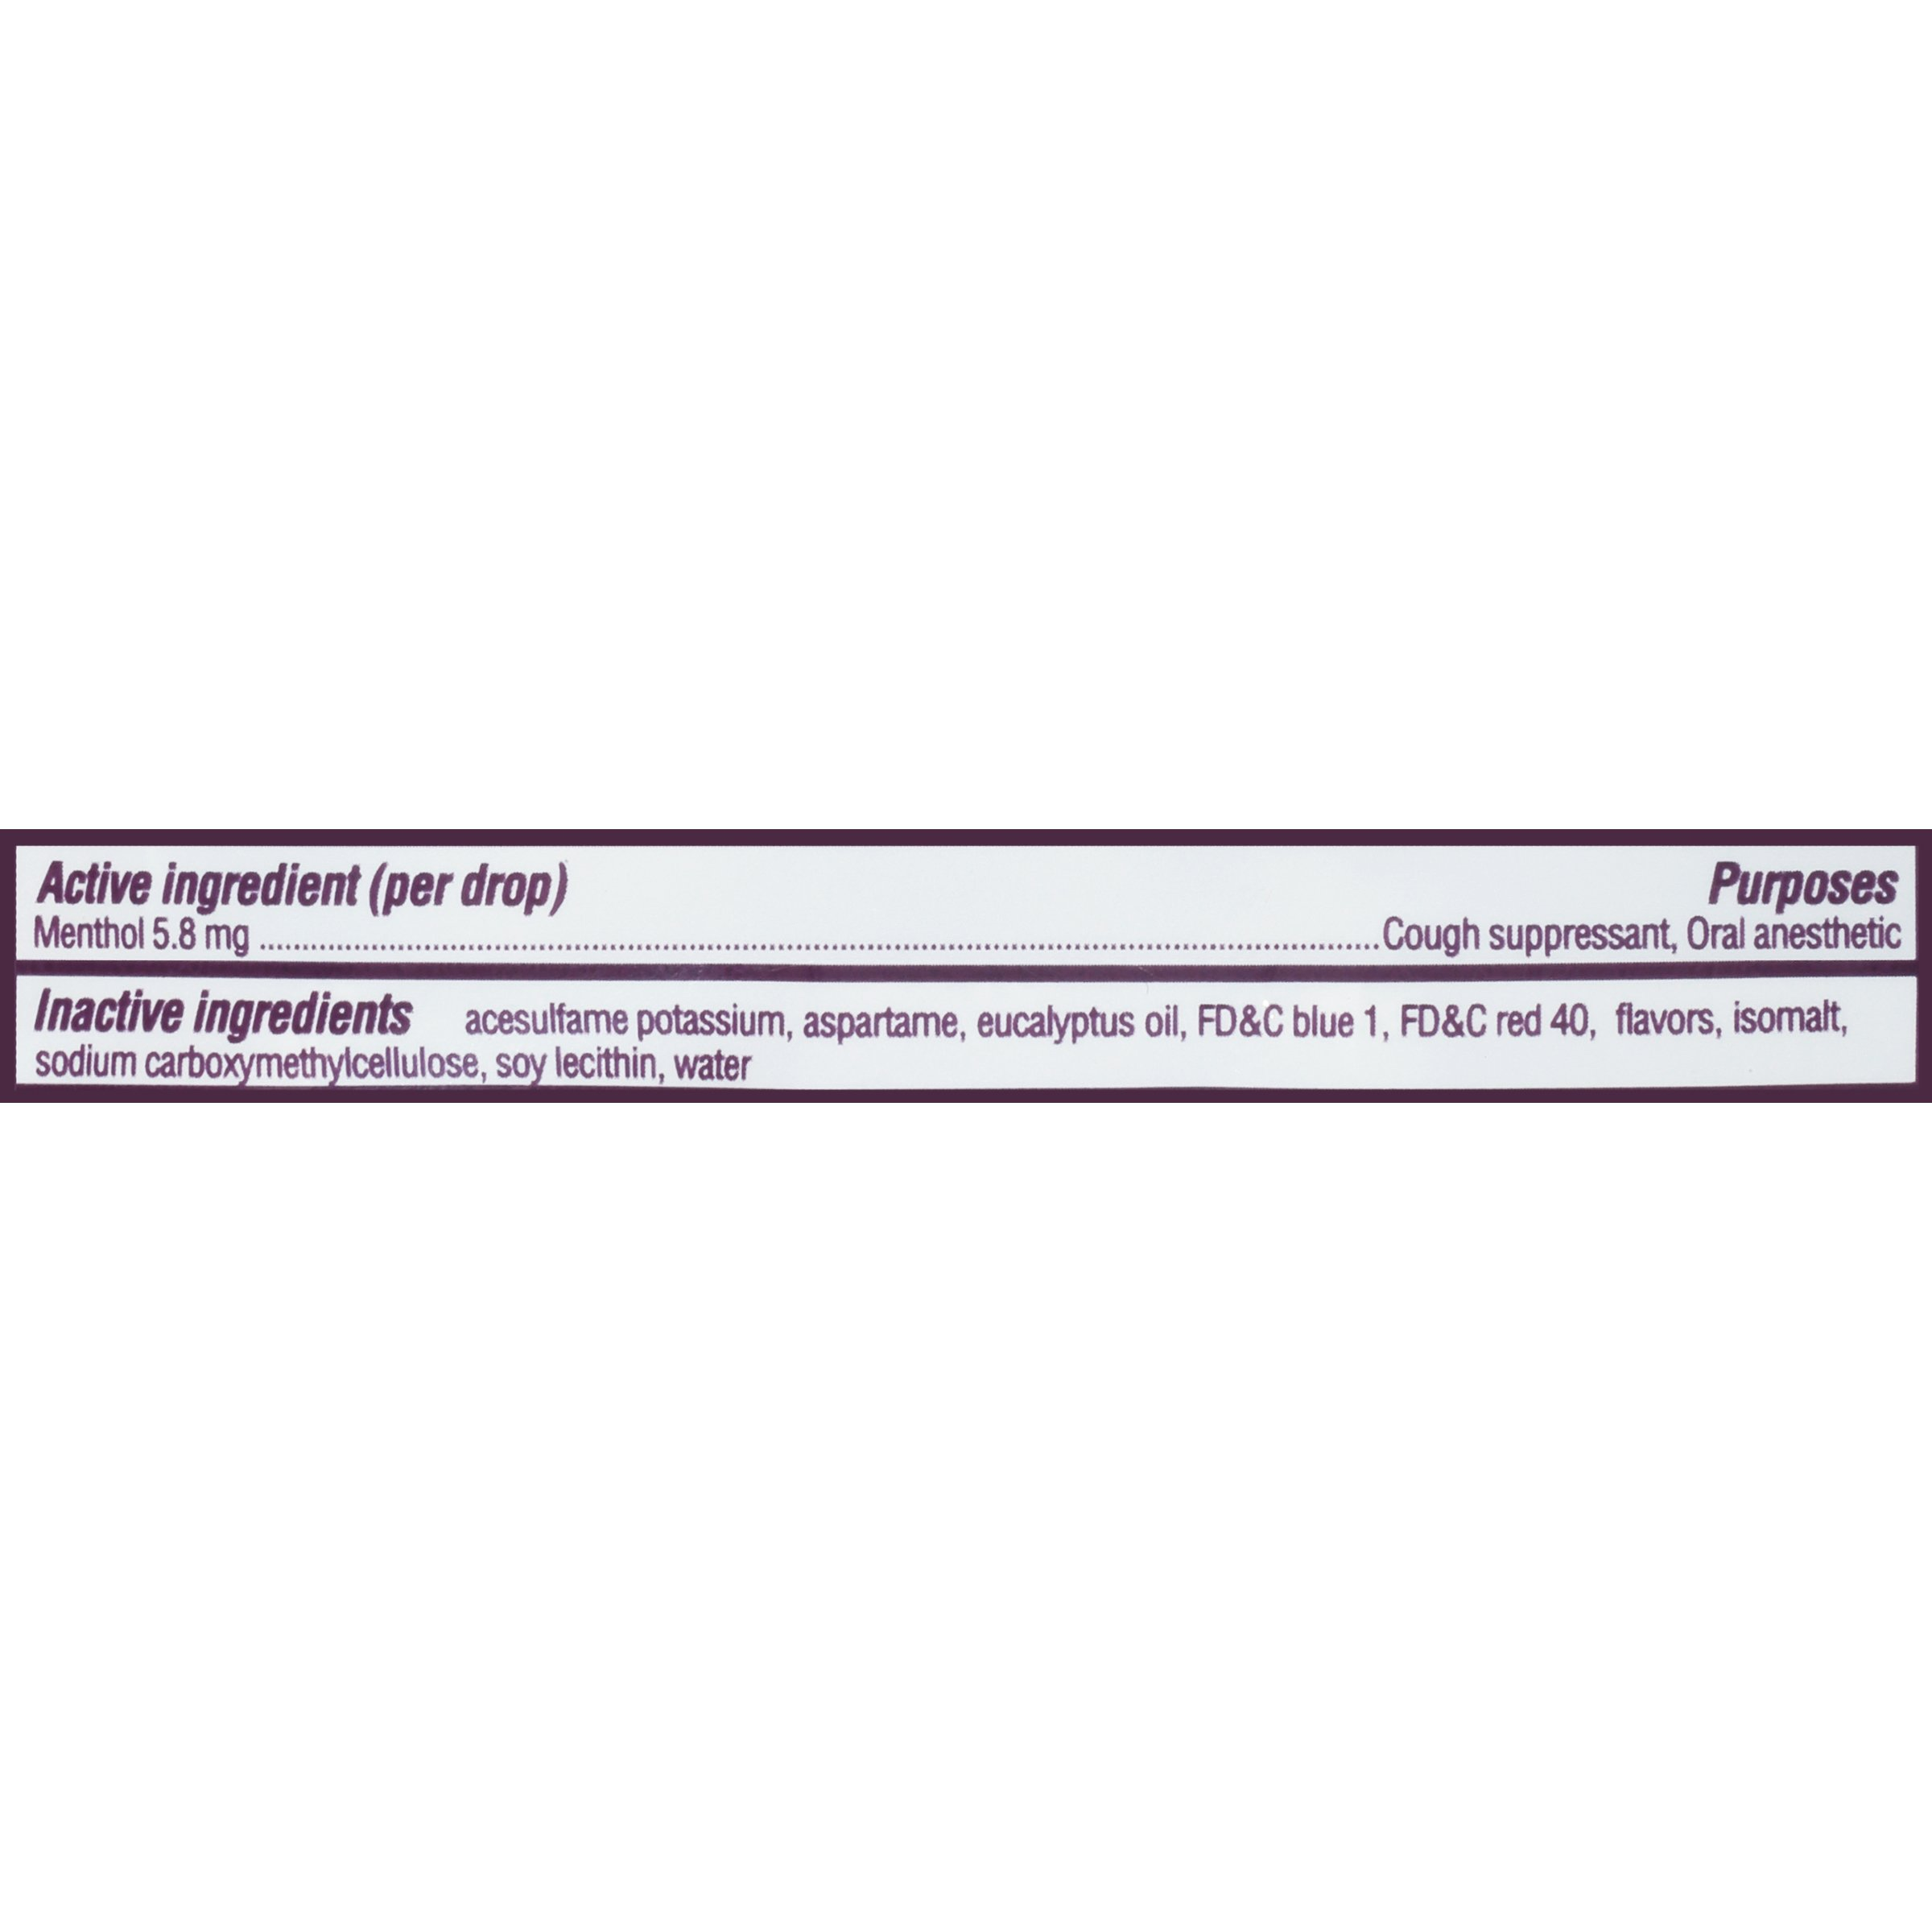 Halls Black Cherry Sugar Free Cough Drops - with Menthol - 840 Drops (12 bags of 70 drops) by Halls (Image #2)